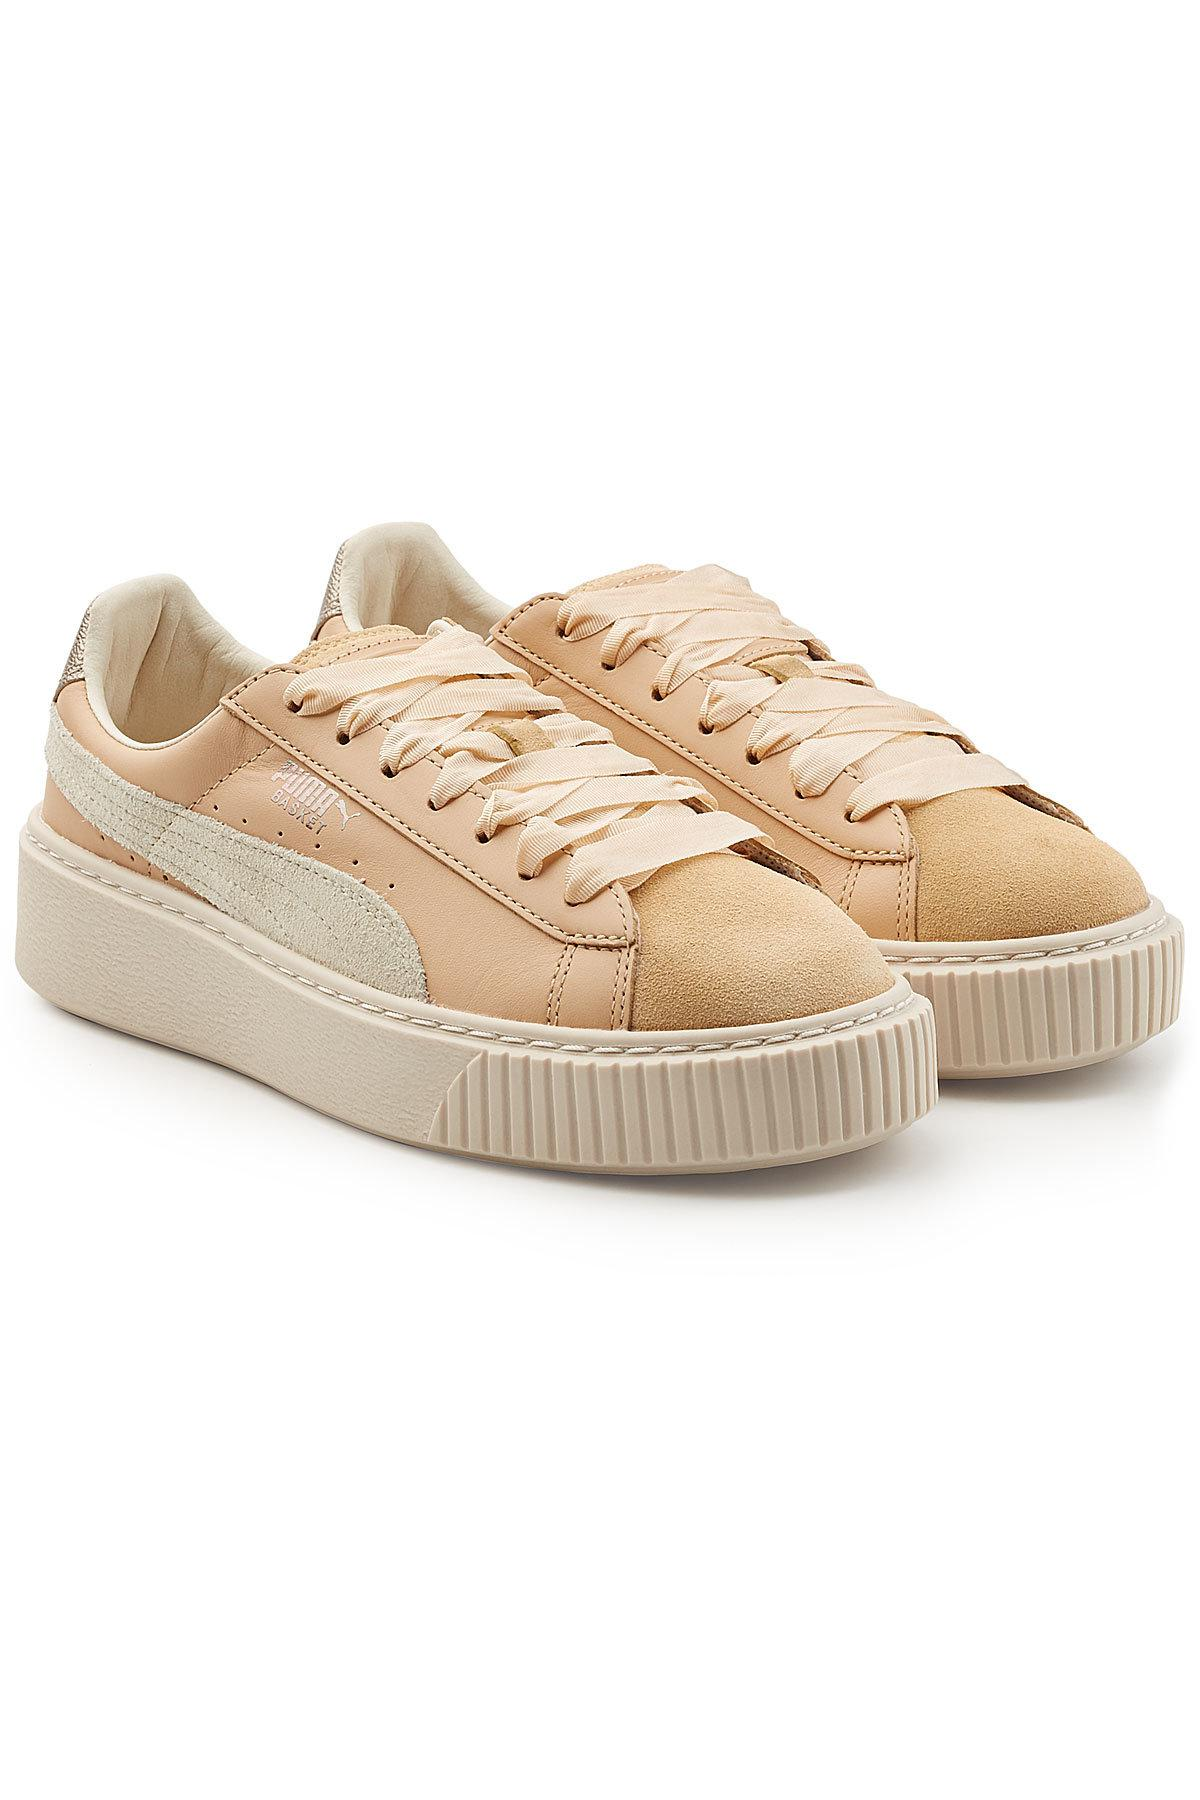 creeper sneakers with suede and leather